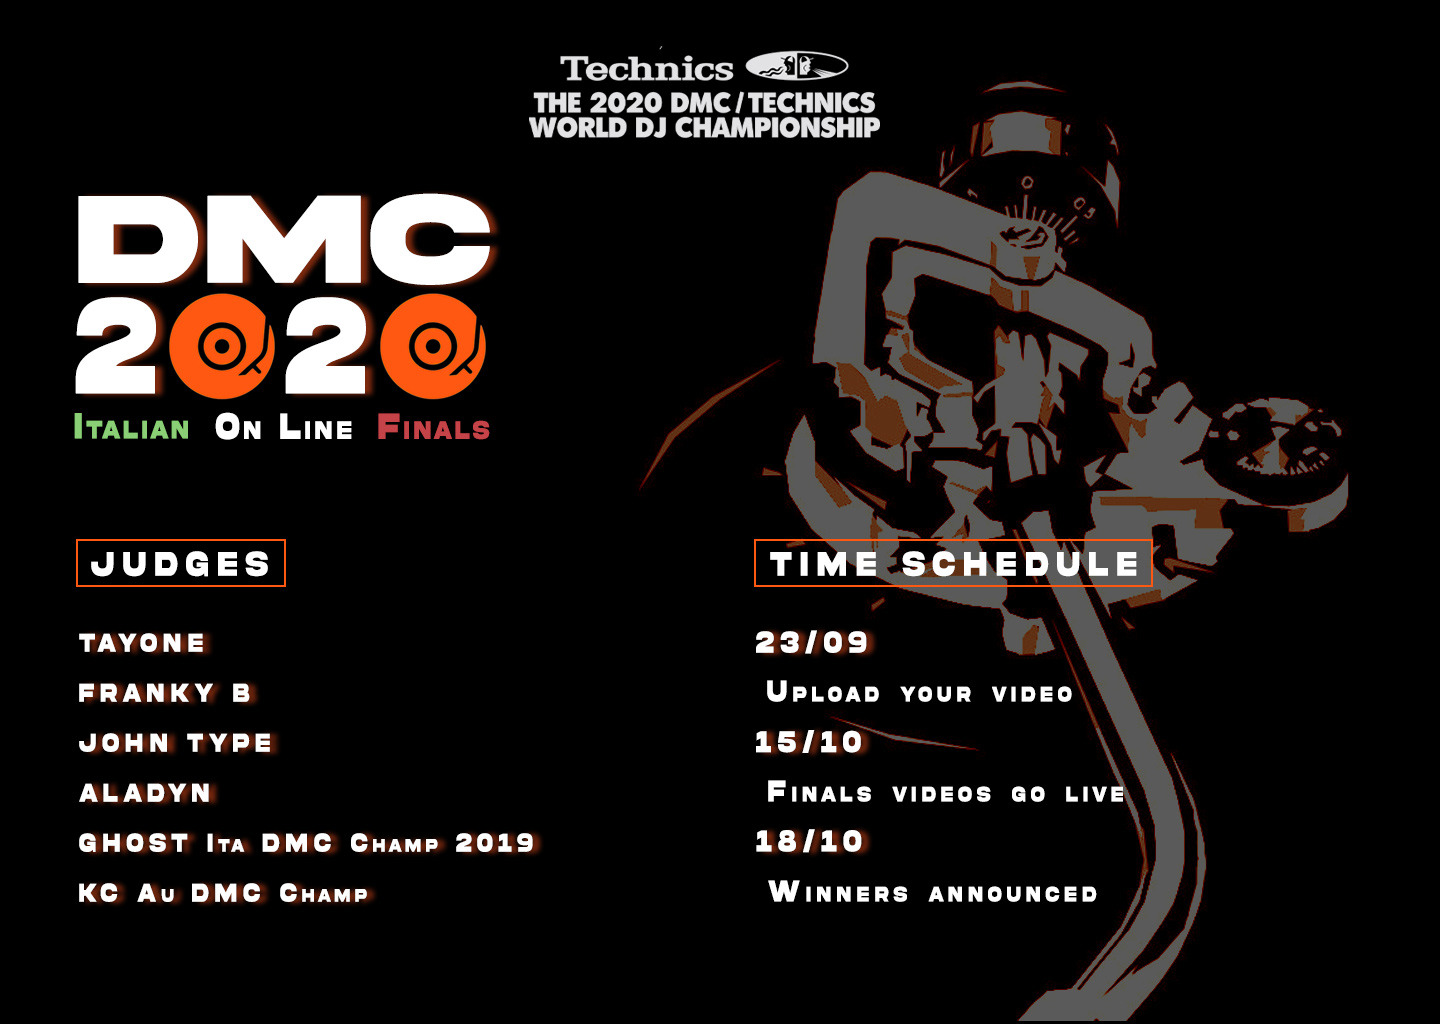 (Italiano) DMC 2020 Finali Italiane On line